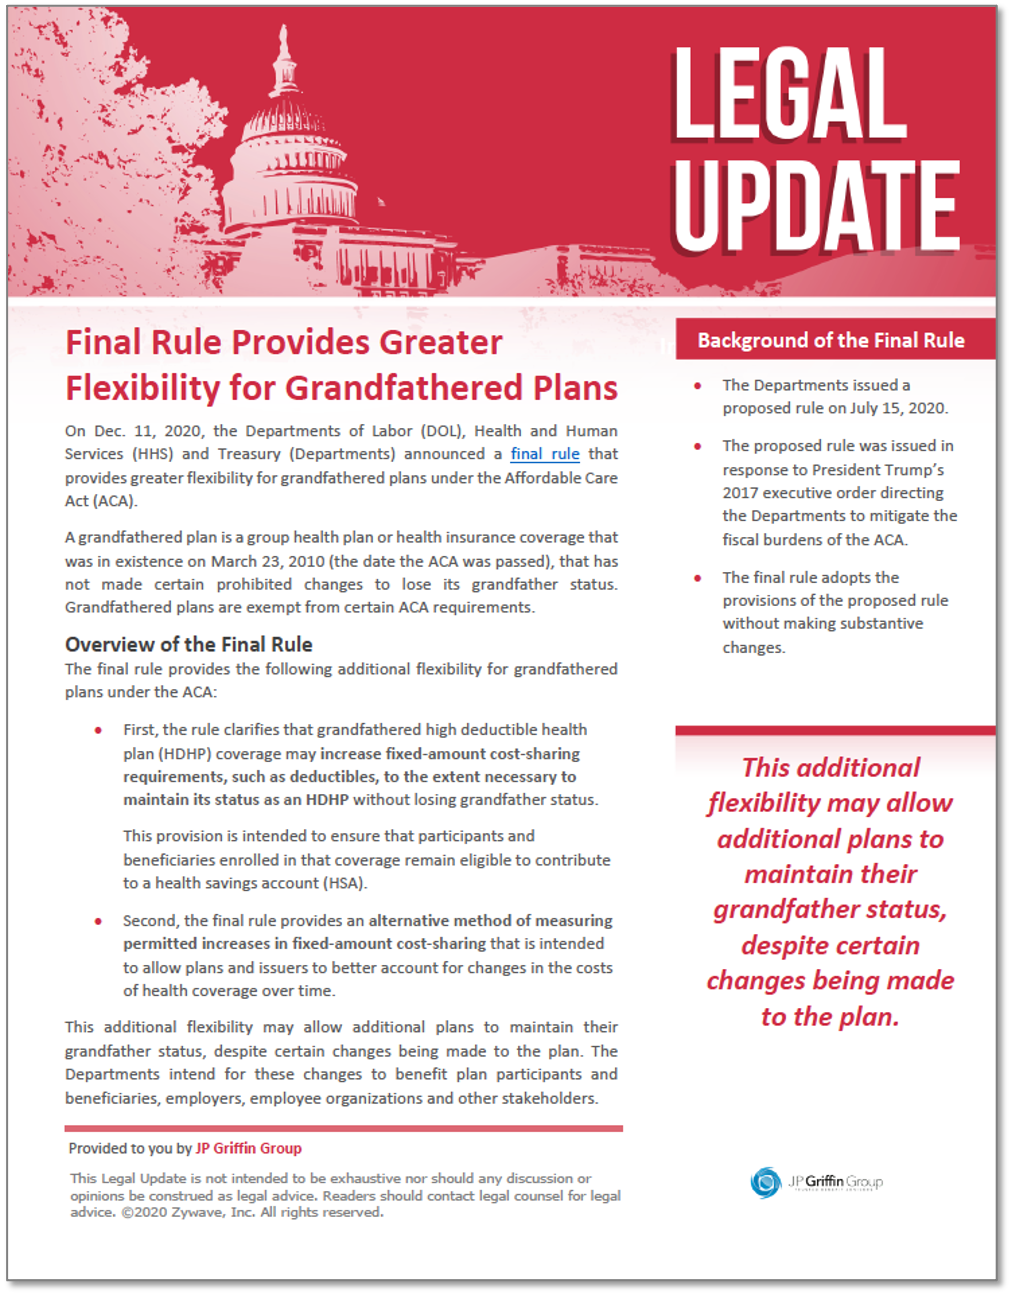 Final Rule Provides Greater Flexibility for Grandfathered Plans